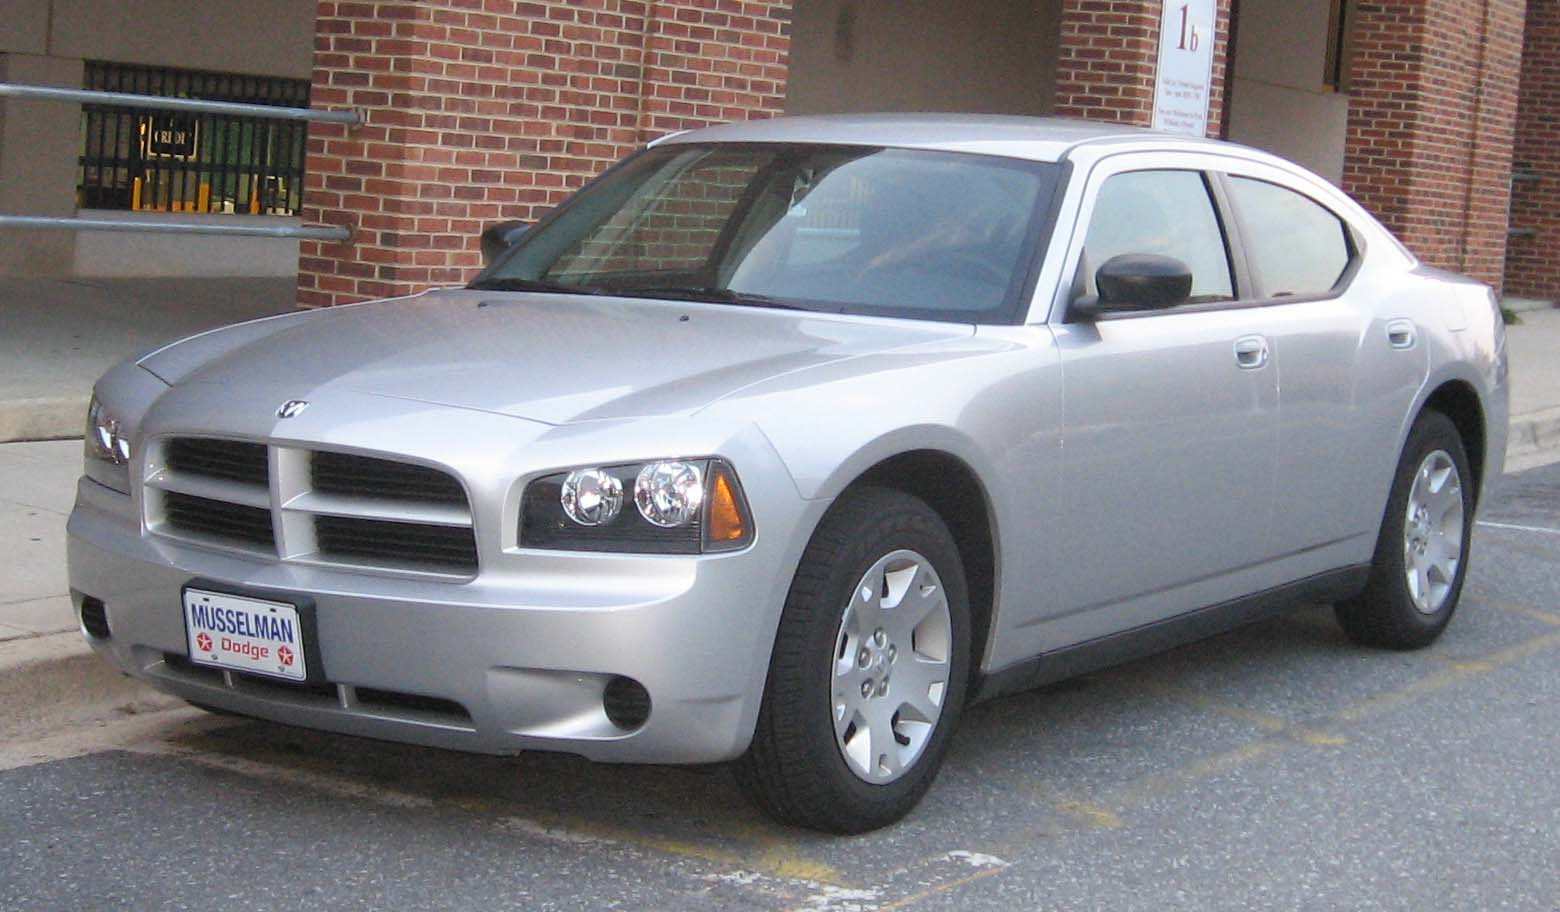 All About Muscle Car: Dodge Charger LX Gallery, History